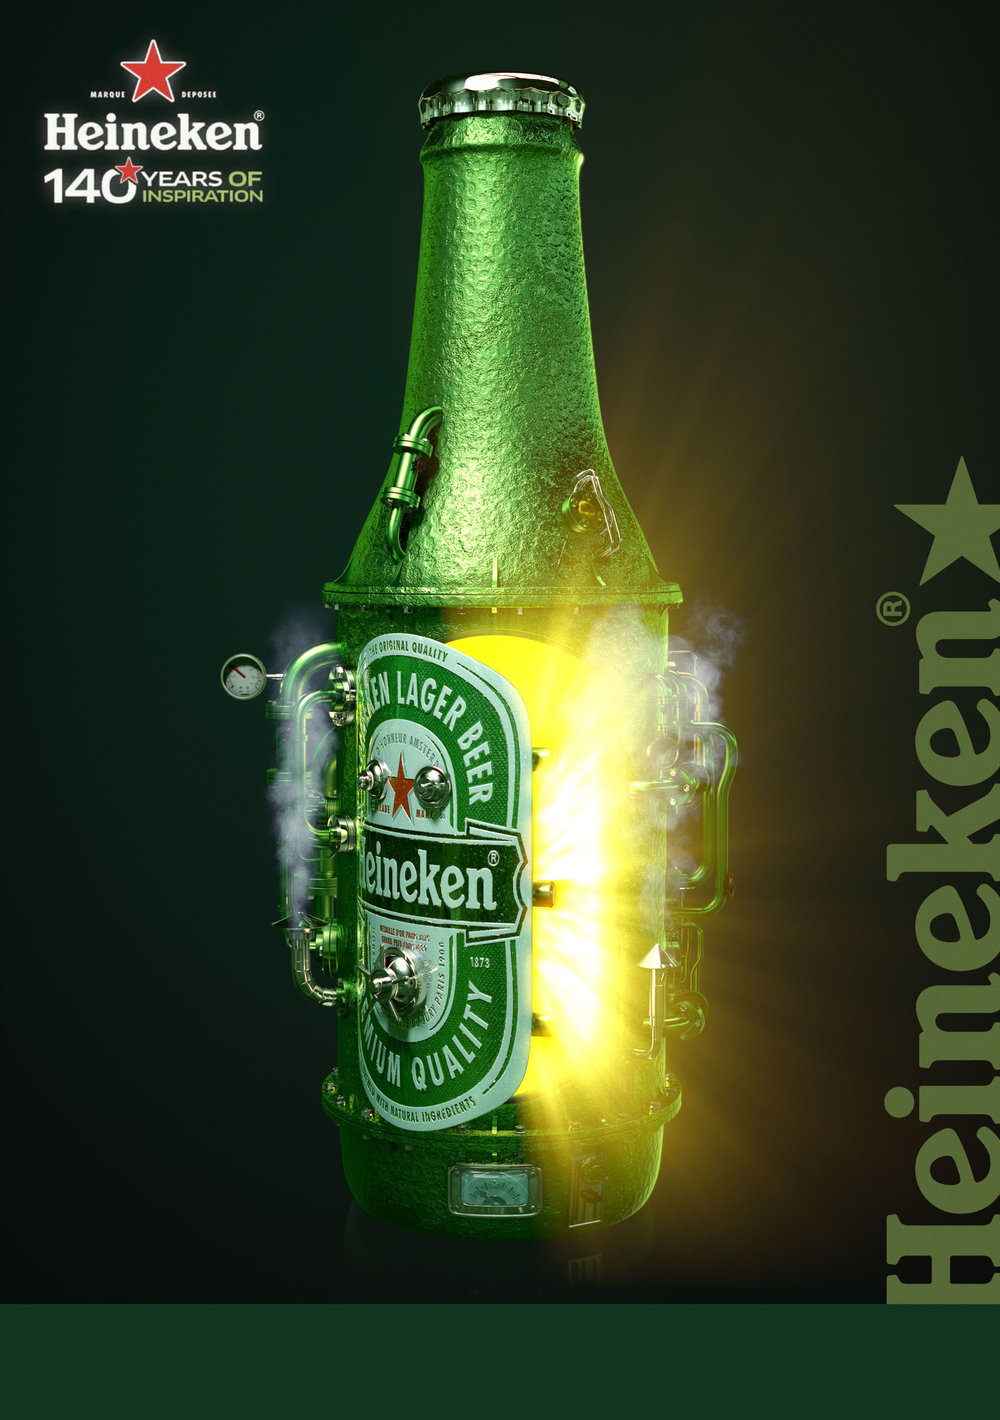 BOOM_CGI_FOODANDDRINKS_heineken-steam-punk.jpg